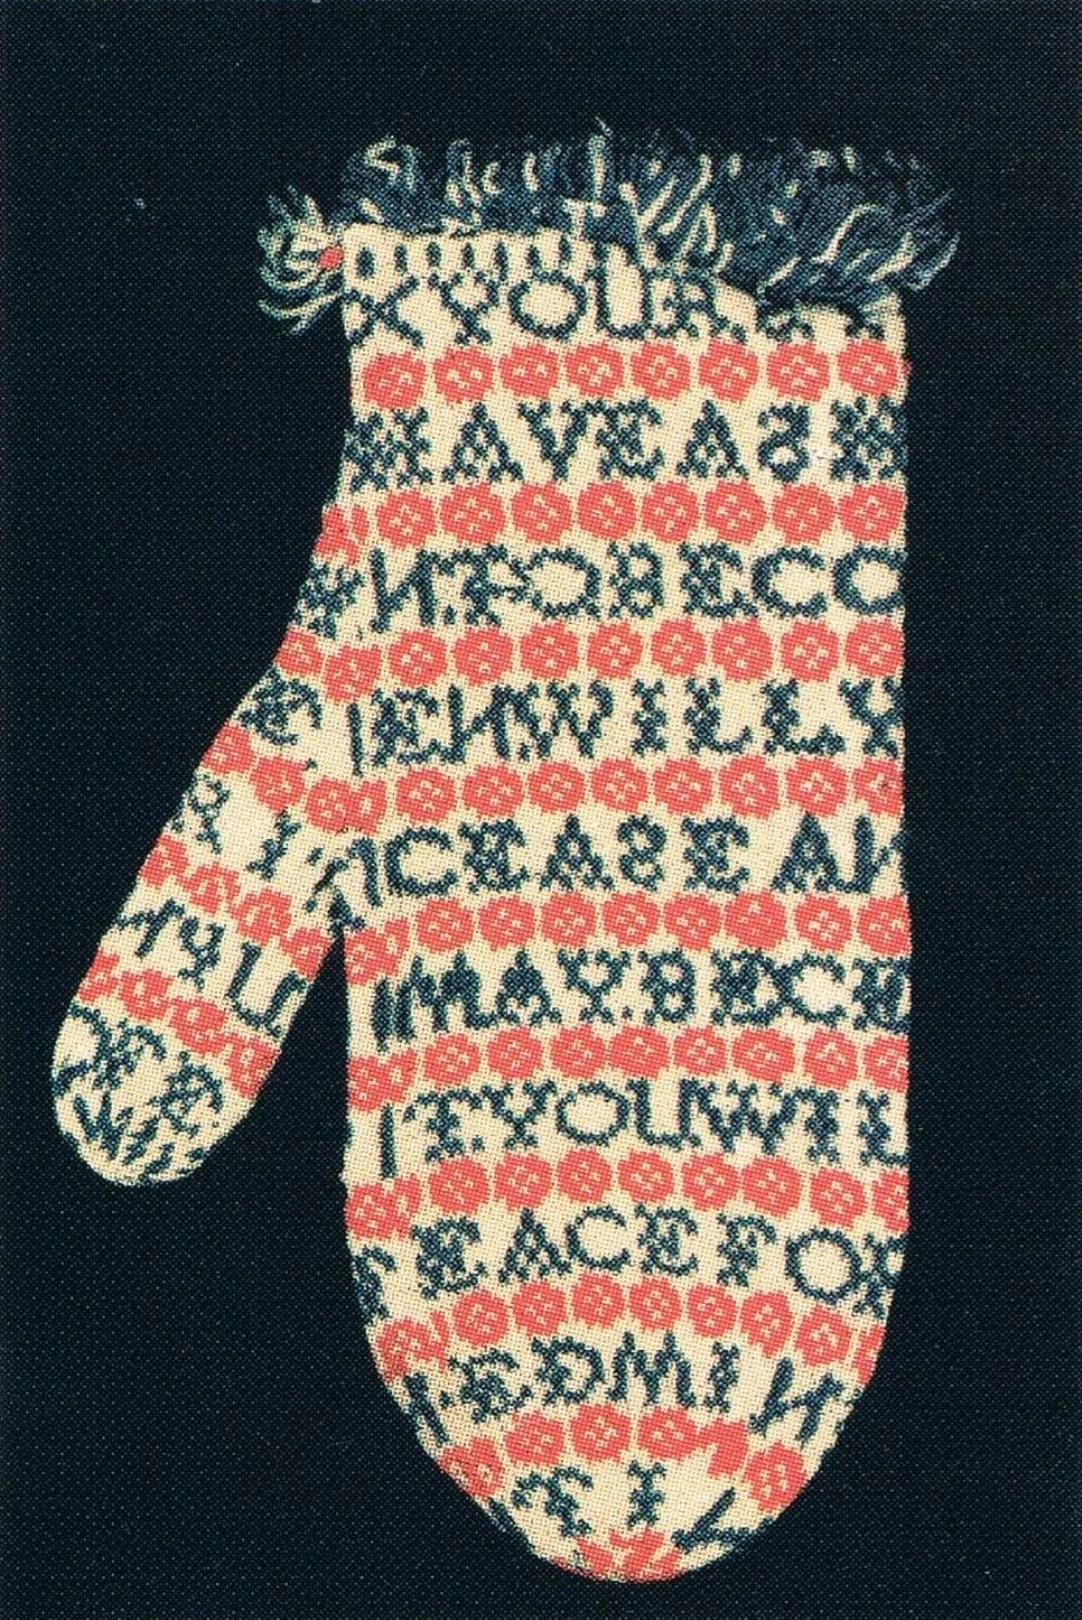 Never Trouble Trouble! 1904 Mitten from Susanna Springer collection. 12-15 stitches per inch.